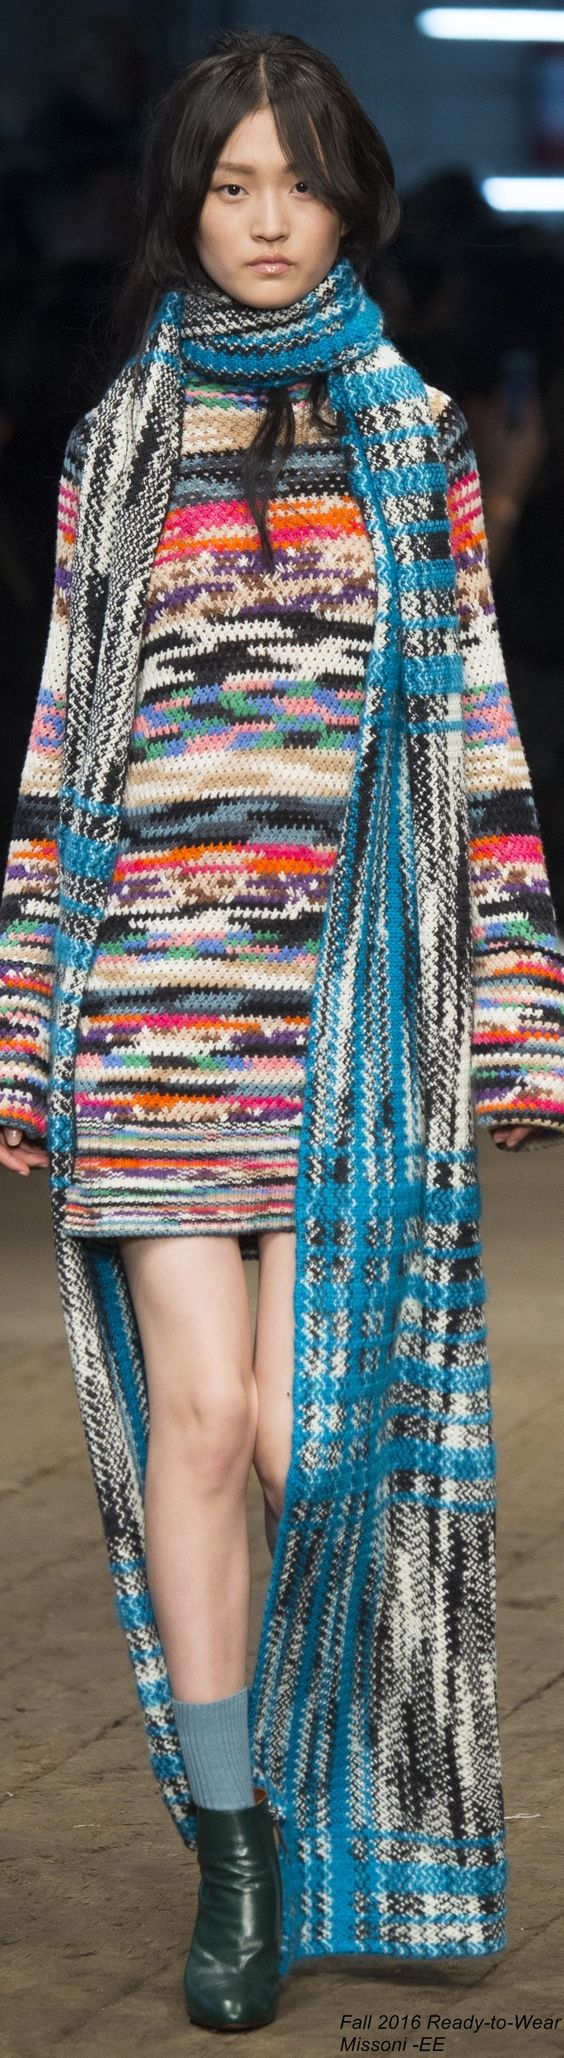 Fall 2016 Ready-to-Wear Missoni: